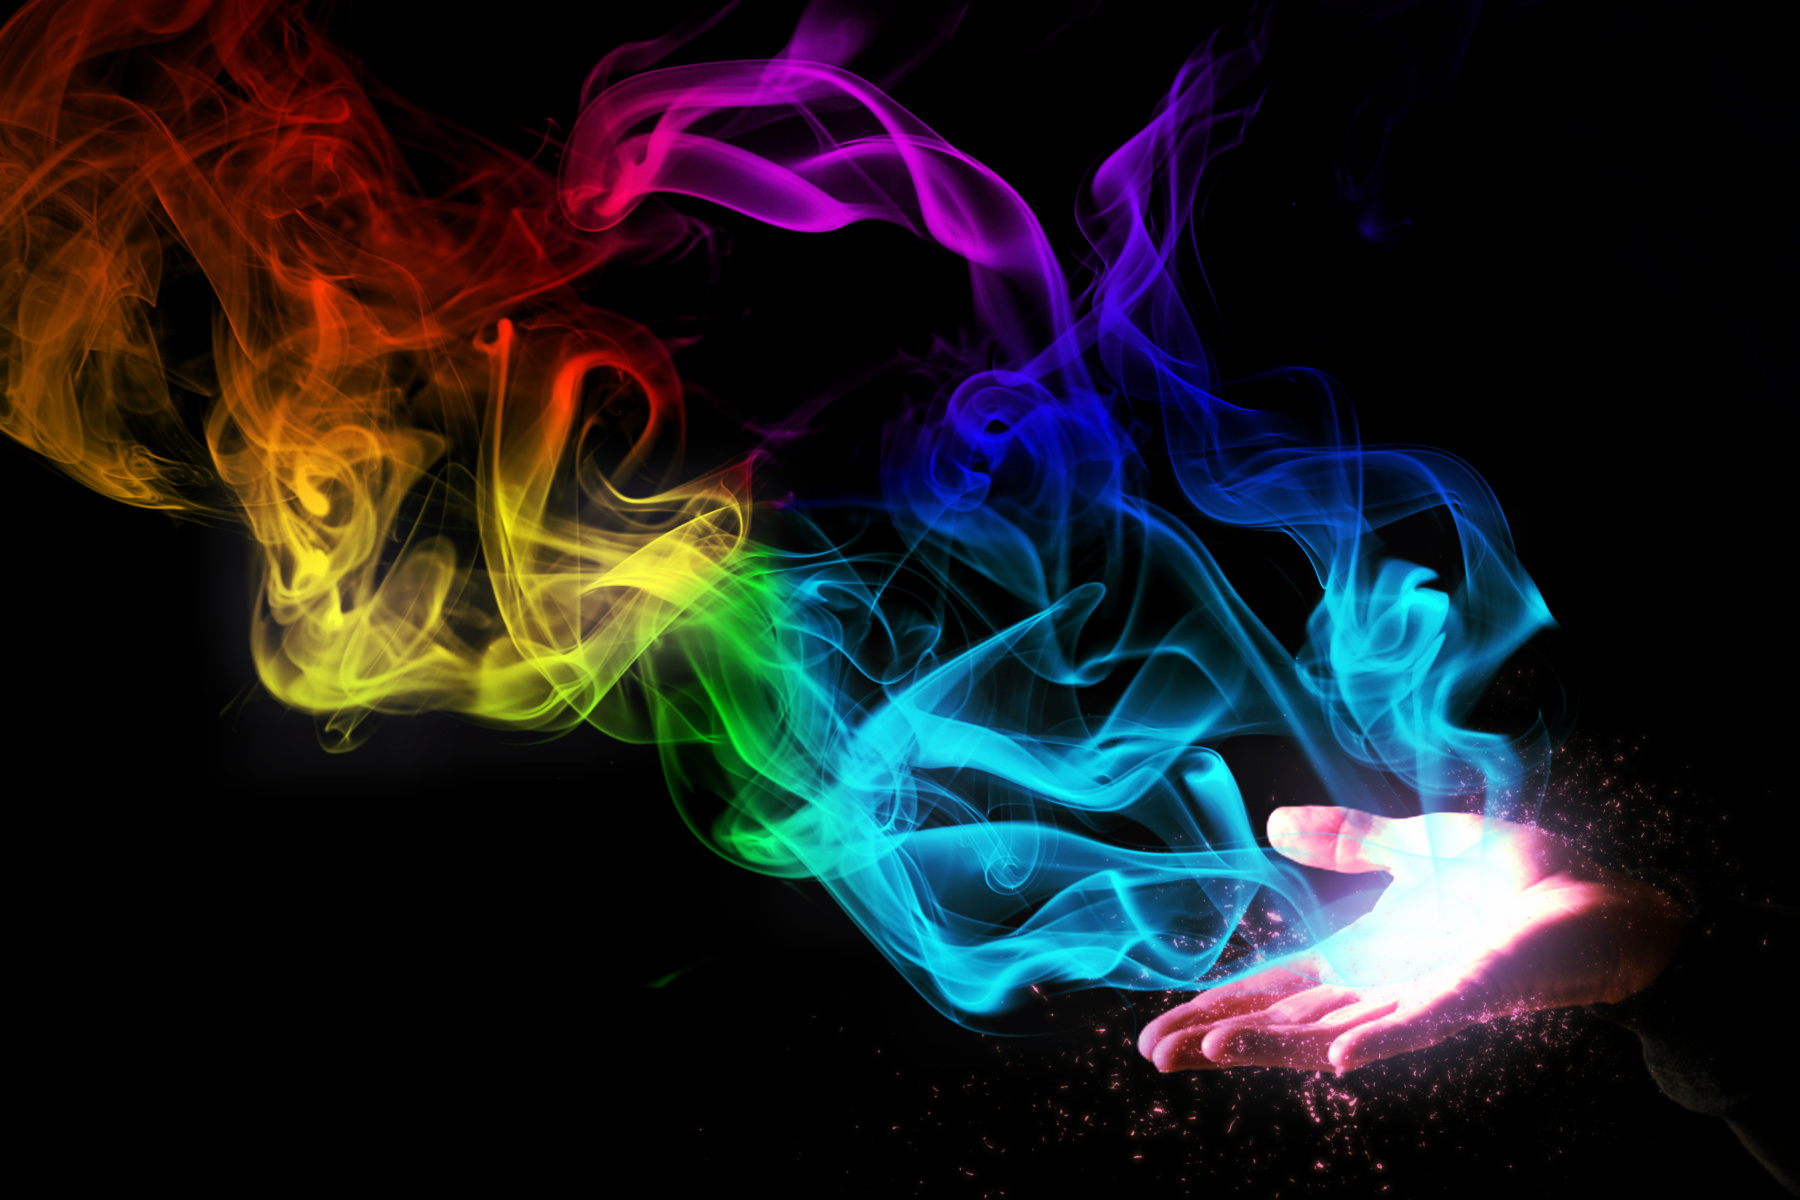 Smoke color Hand by DiegoSkywallker